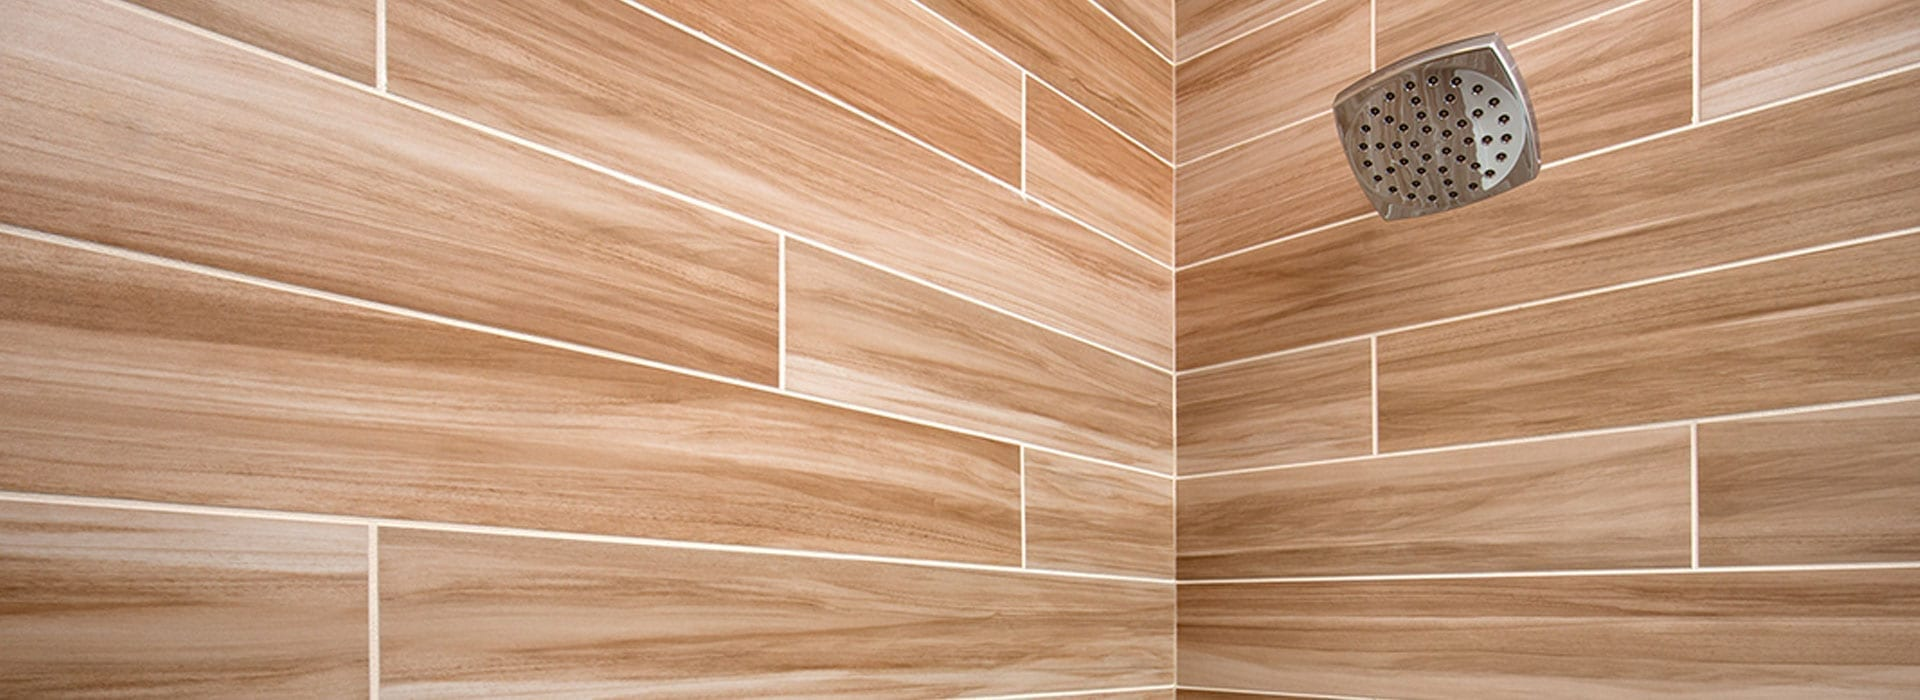 Selecting the Perfect Grout for Tile